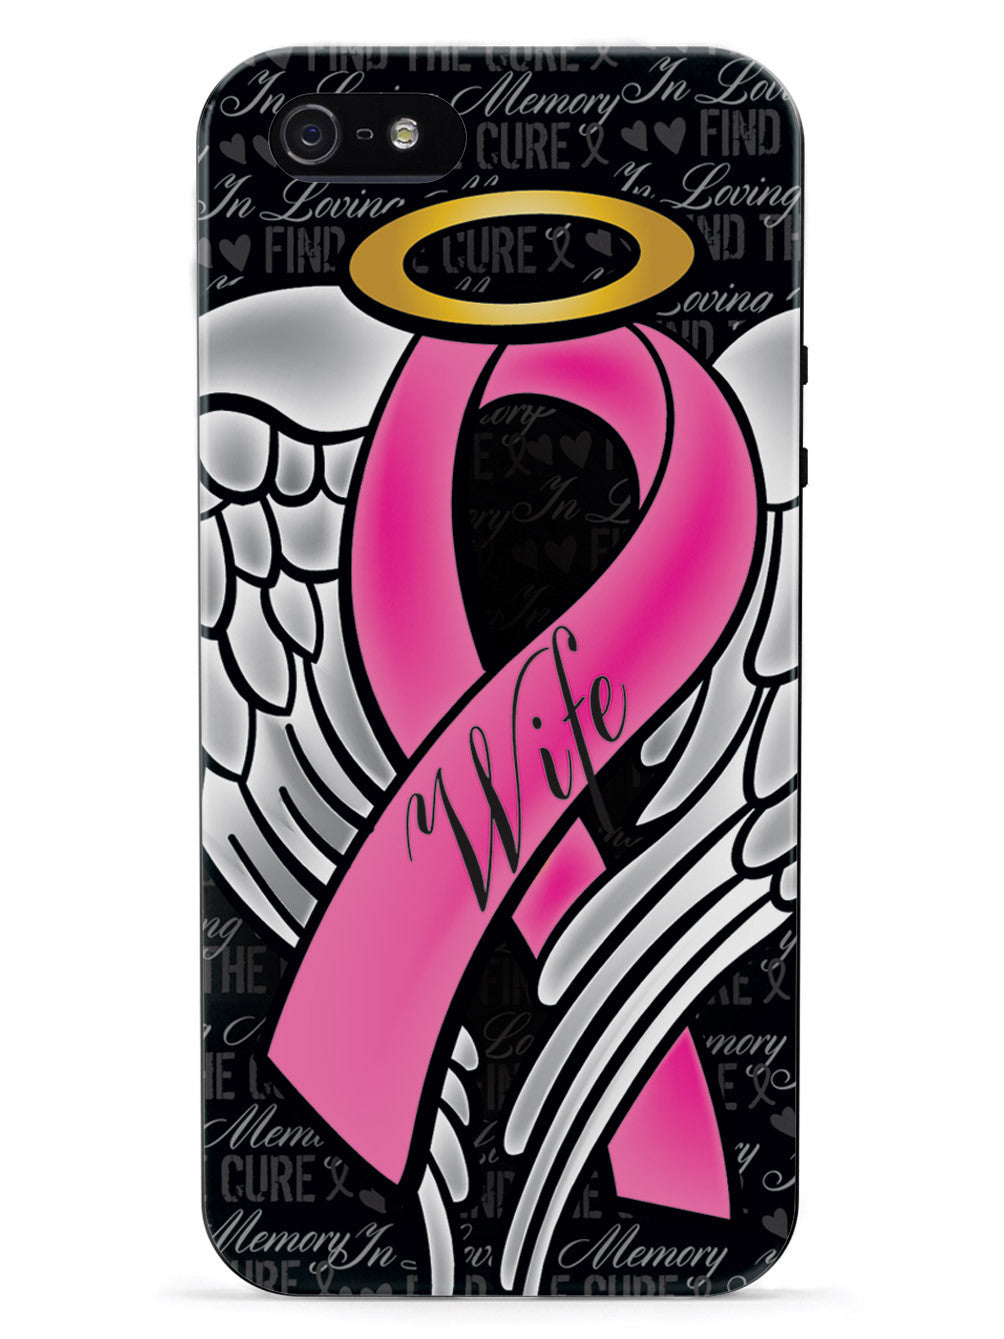 In Loving Memory of My Wife - Pink Ribbon Case